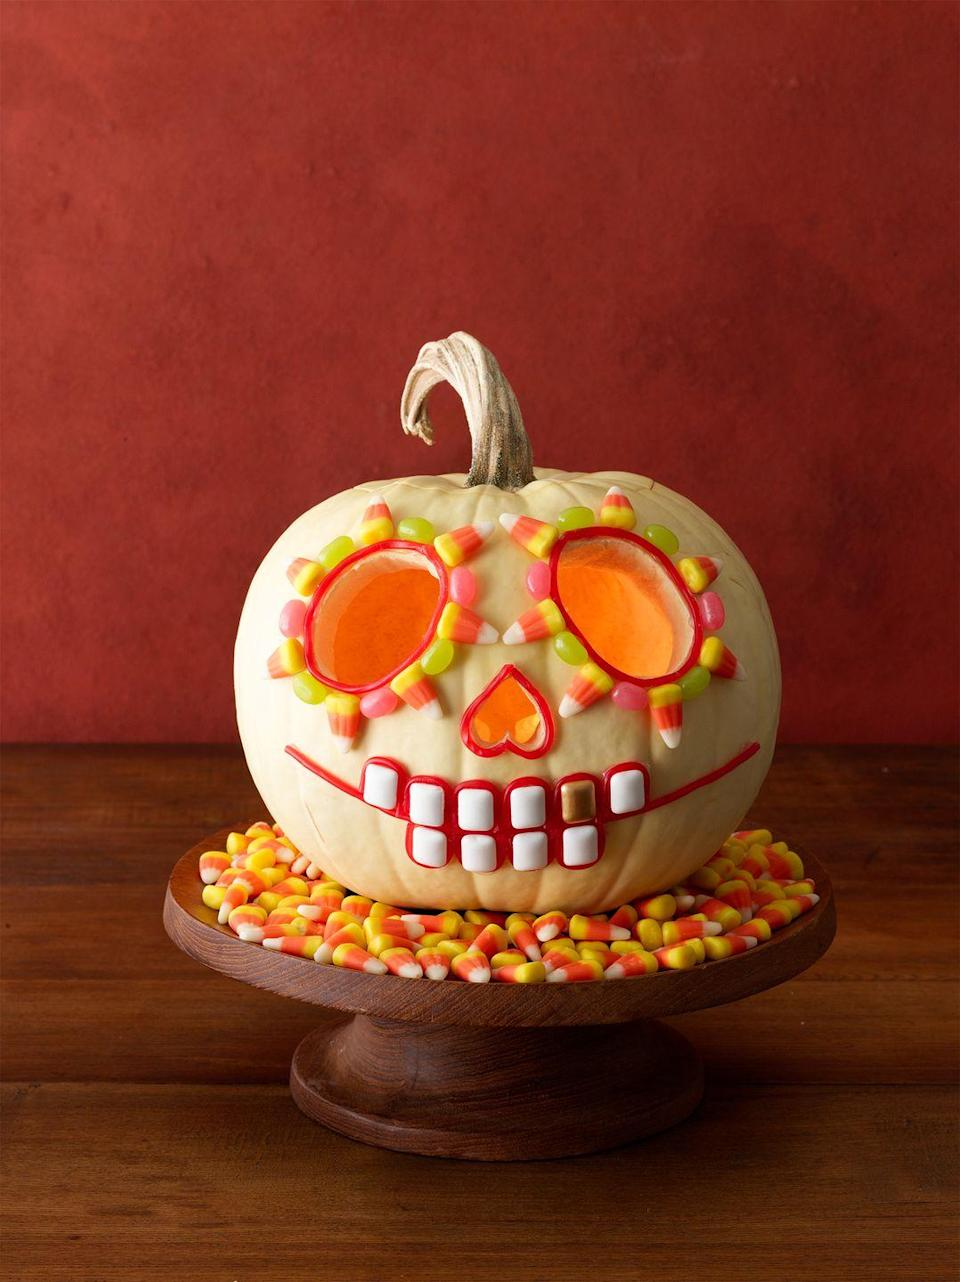 """<p>Can't figure out what to do with all of that candy corn? Put your extra Halloween candy to good use by decking out your pumpkin's carved face. </p><p><a class=""""link rapid-noclick-resp"""" href=""""https://www.amazon.com/Halloween-Candy-Corn-Brachs/dp/B07XHNG8VP/ref=sr_1_2?tag=syn-yahoo-20&ascsubtag=%5Bartid%7C10055.g.238%5Bsrc%7Cyahoo-us"""" rel=""""nofollow noopener"""" target=""""_blank"""" data-ylk=""""slk:SHOP CANDY CORN"""">SHOP CANDY CORN</a></p>"""